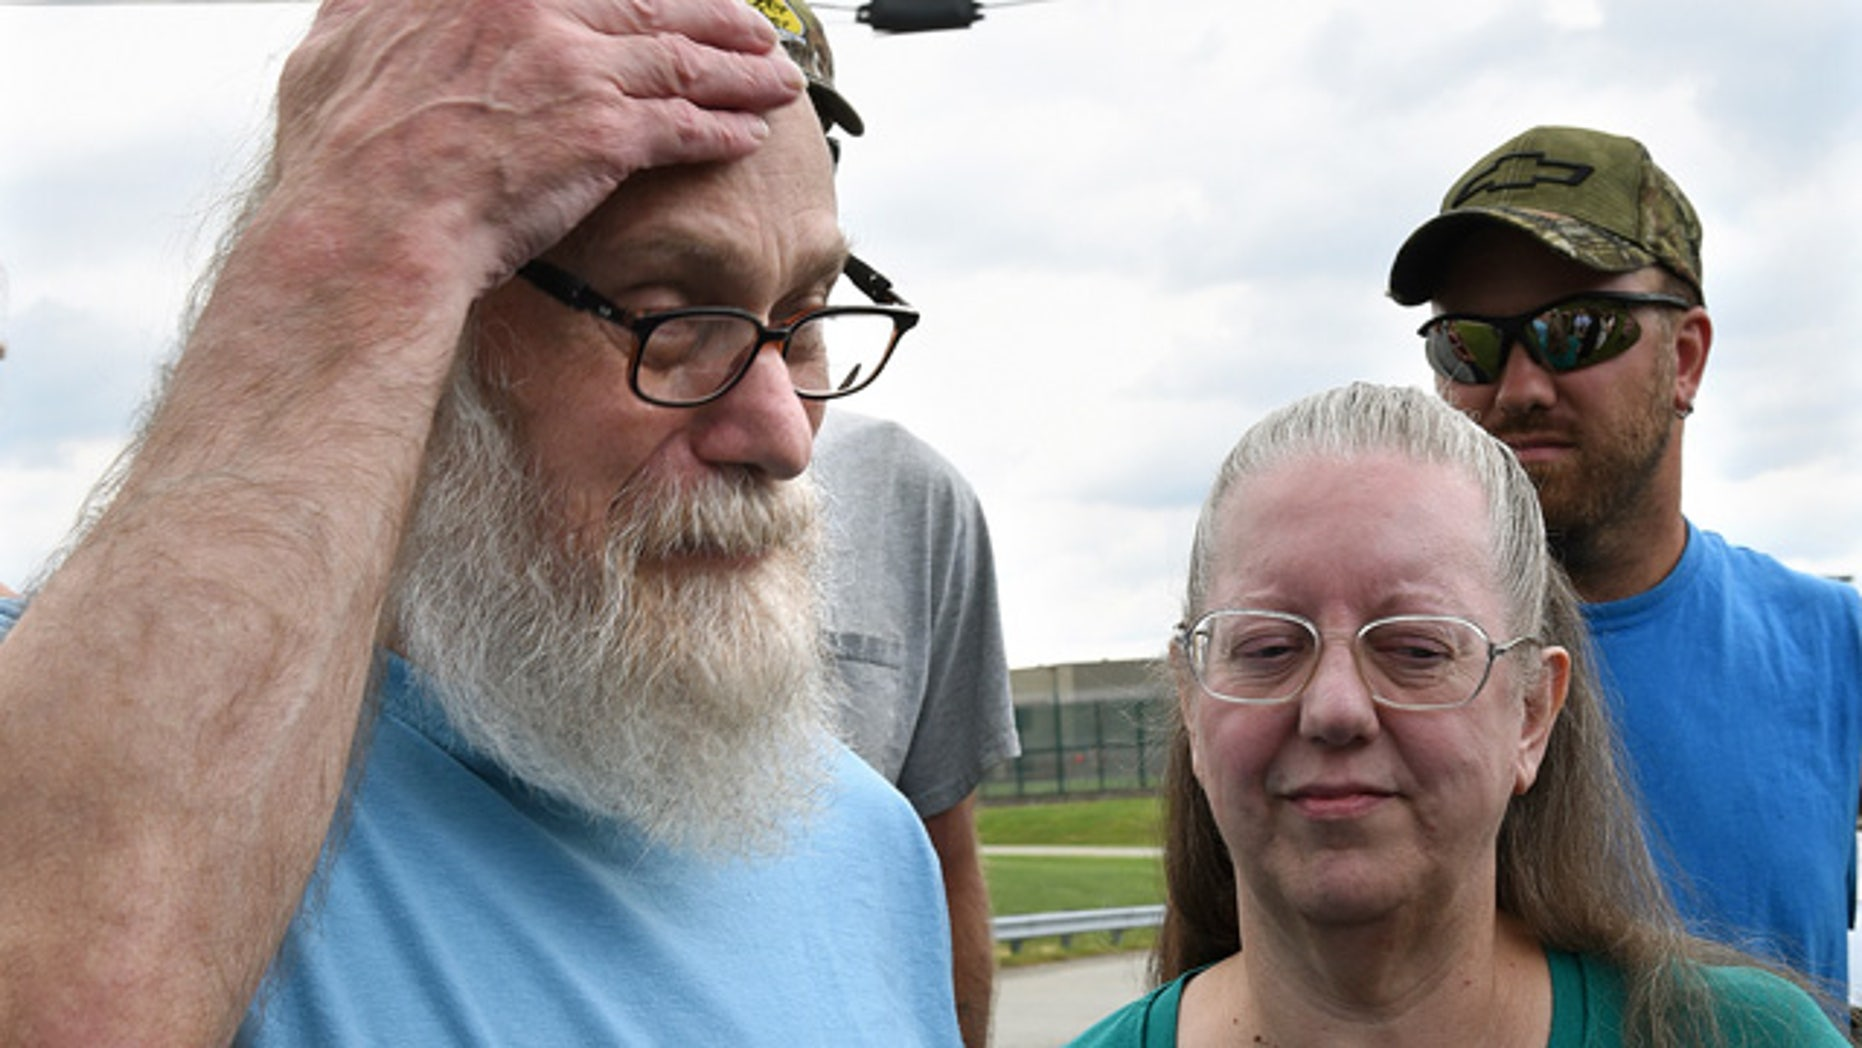 Aug. 13, 2015: Lewis Fogle, pictured with his wife, Deb, becomes emotional after his release from the State Correctional Institution in Pine Grove, Pa. Fogle, who spent 34 years imprisoned for the 1976 murder of a 15-year-old girl, was released after DNA tests proved his was not the person who committed the crime. (Bob Donaldson/Pittsburgh Post-Gazette via AP)